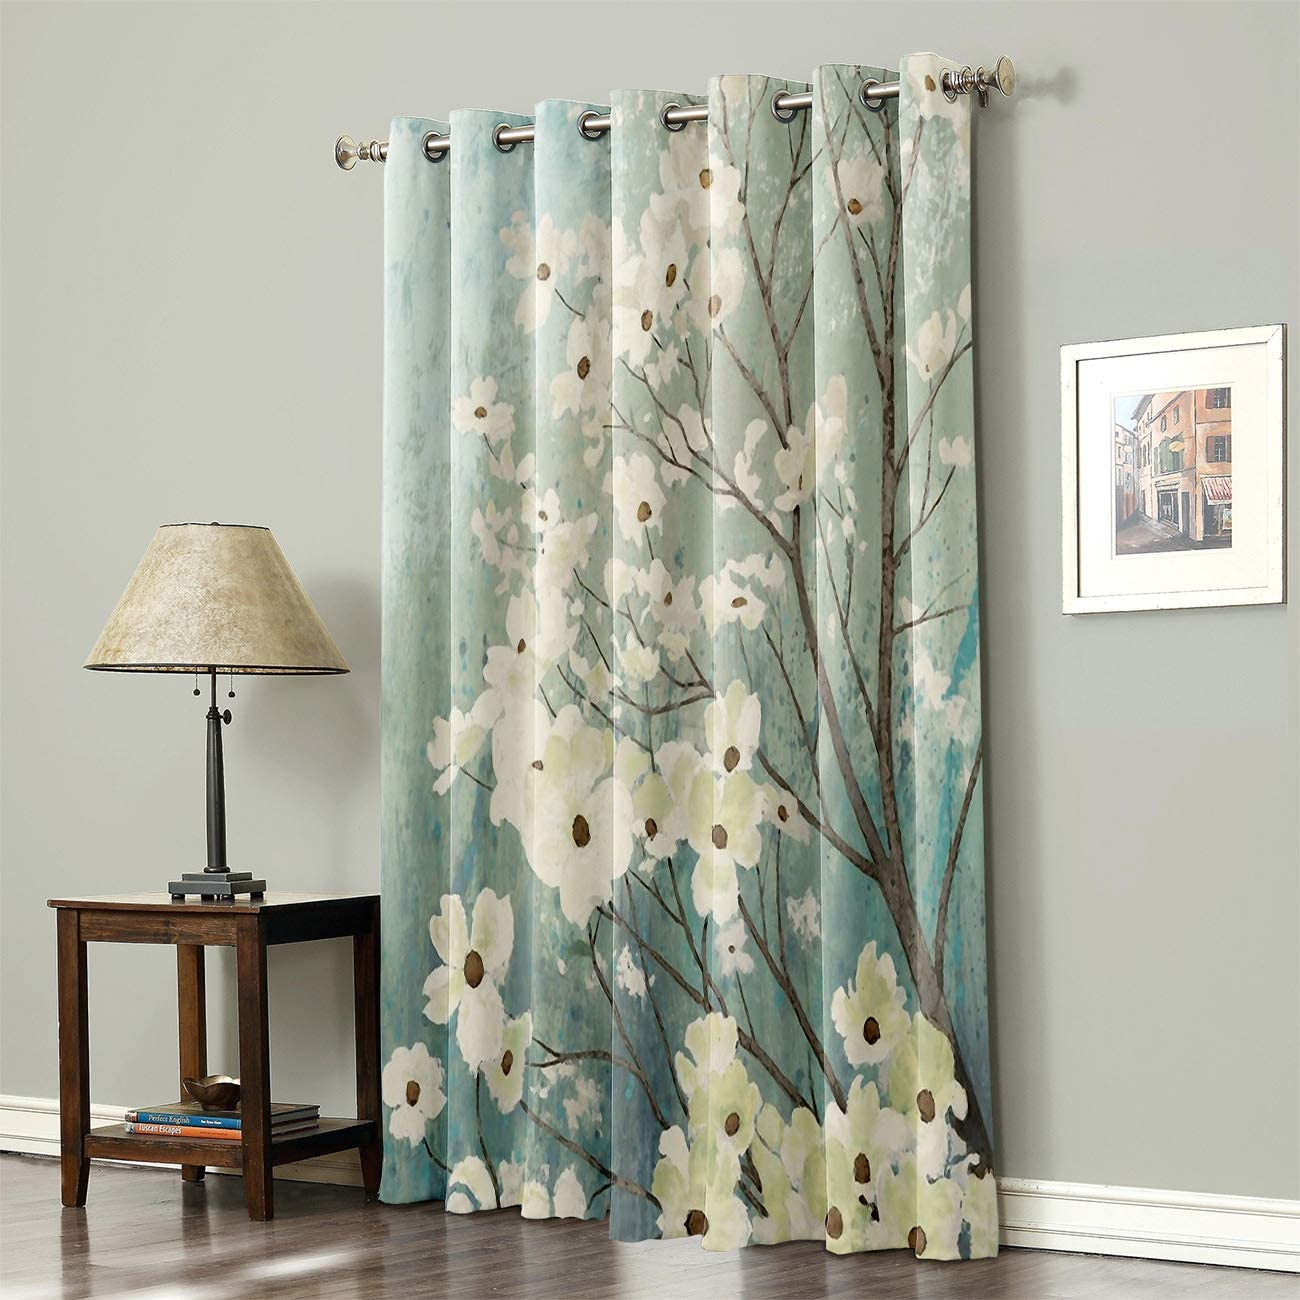 BABE Product MAPS Thermal Insulated Grommet Blackout Bedroo Popular product Curtains for